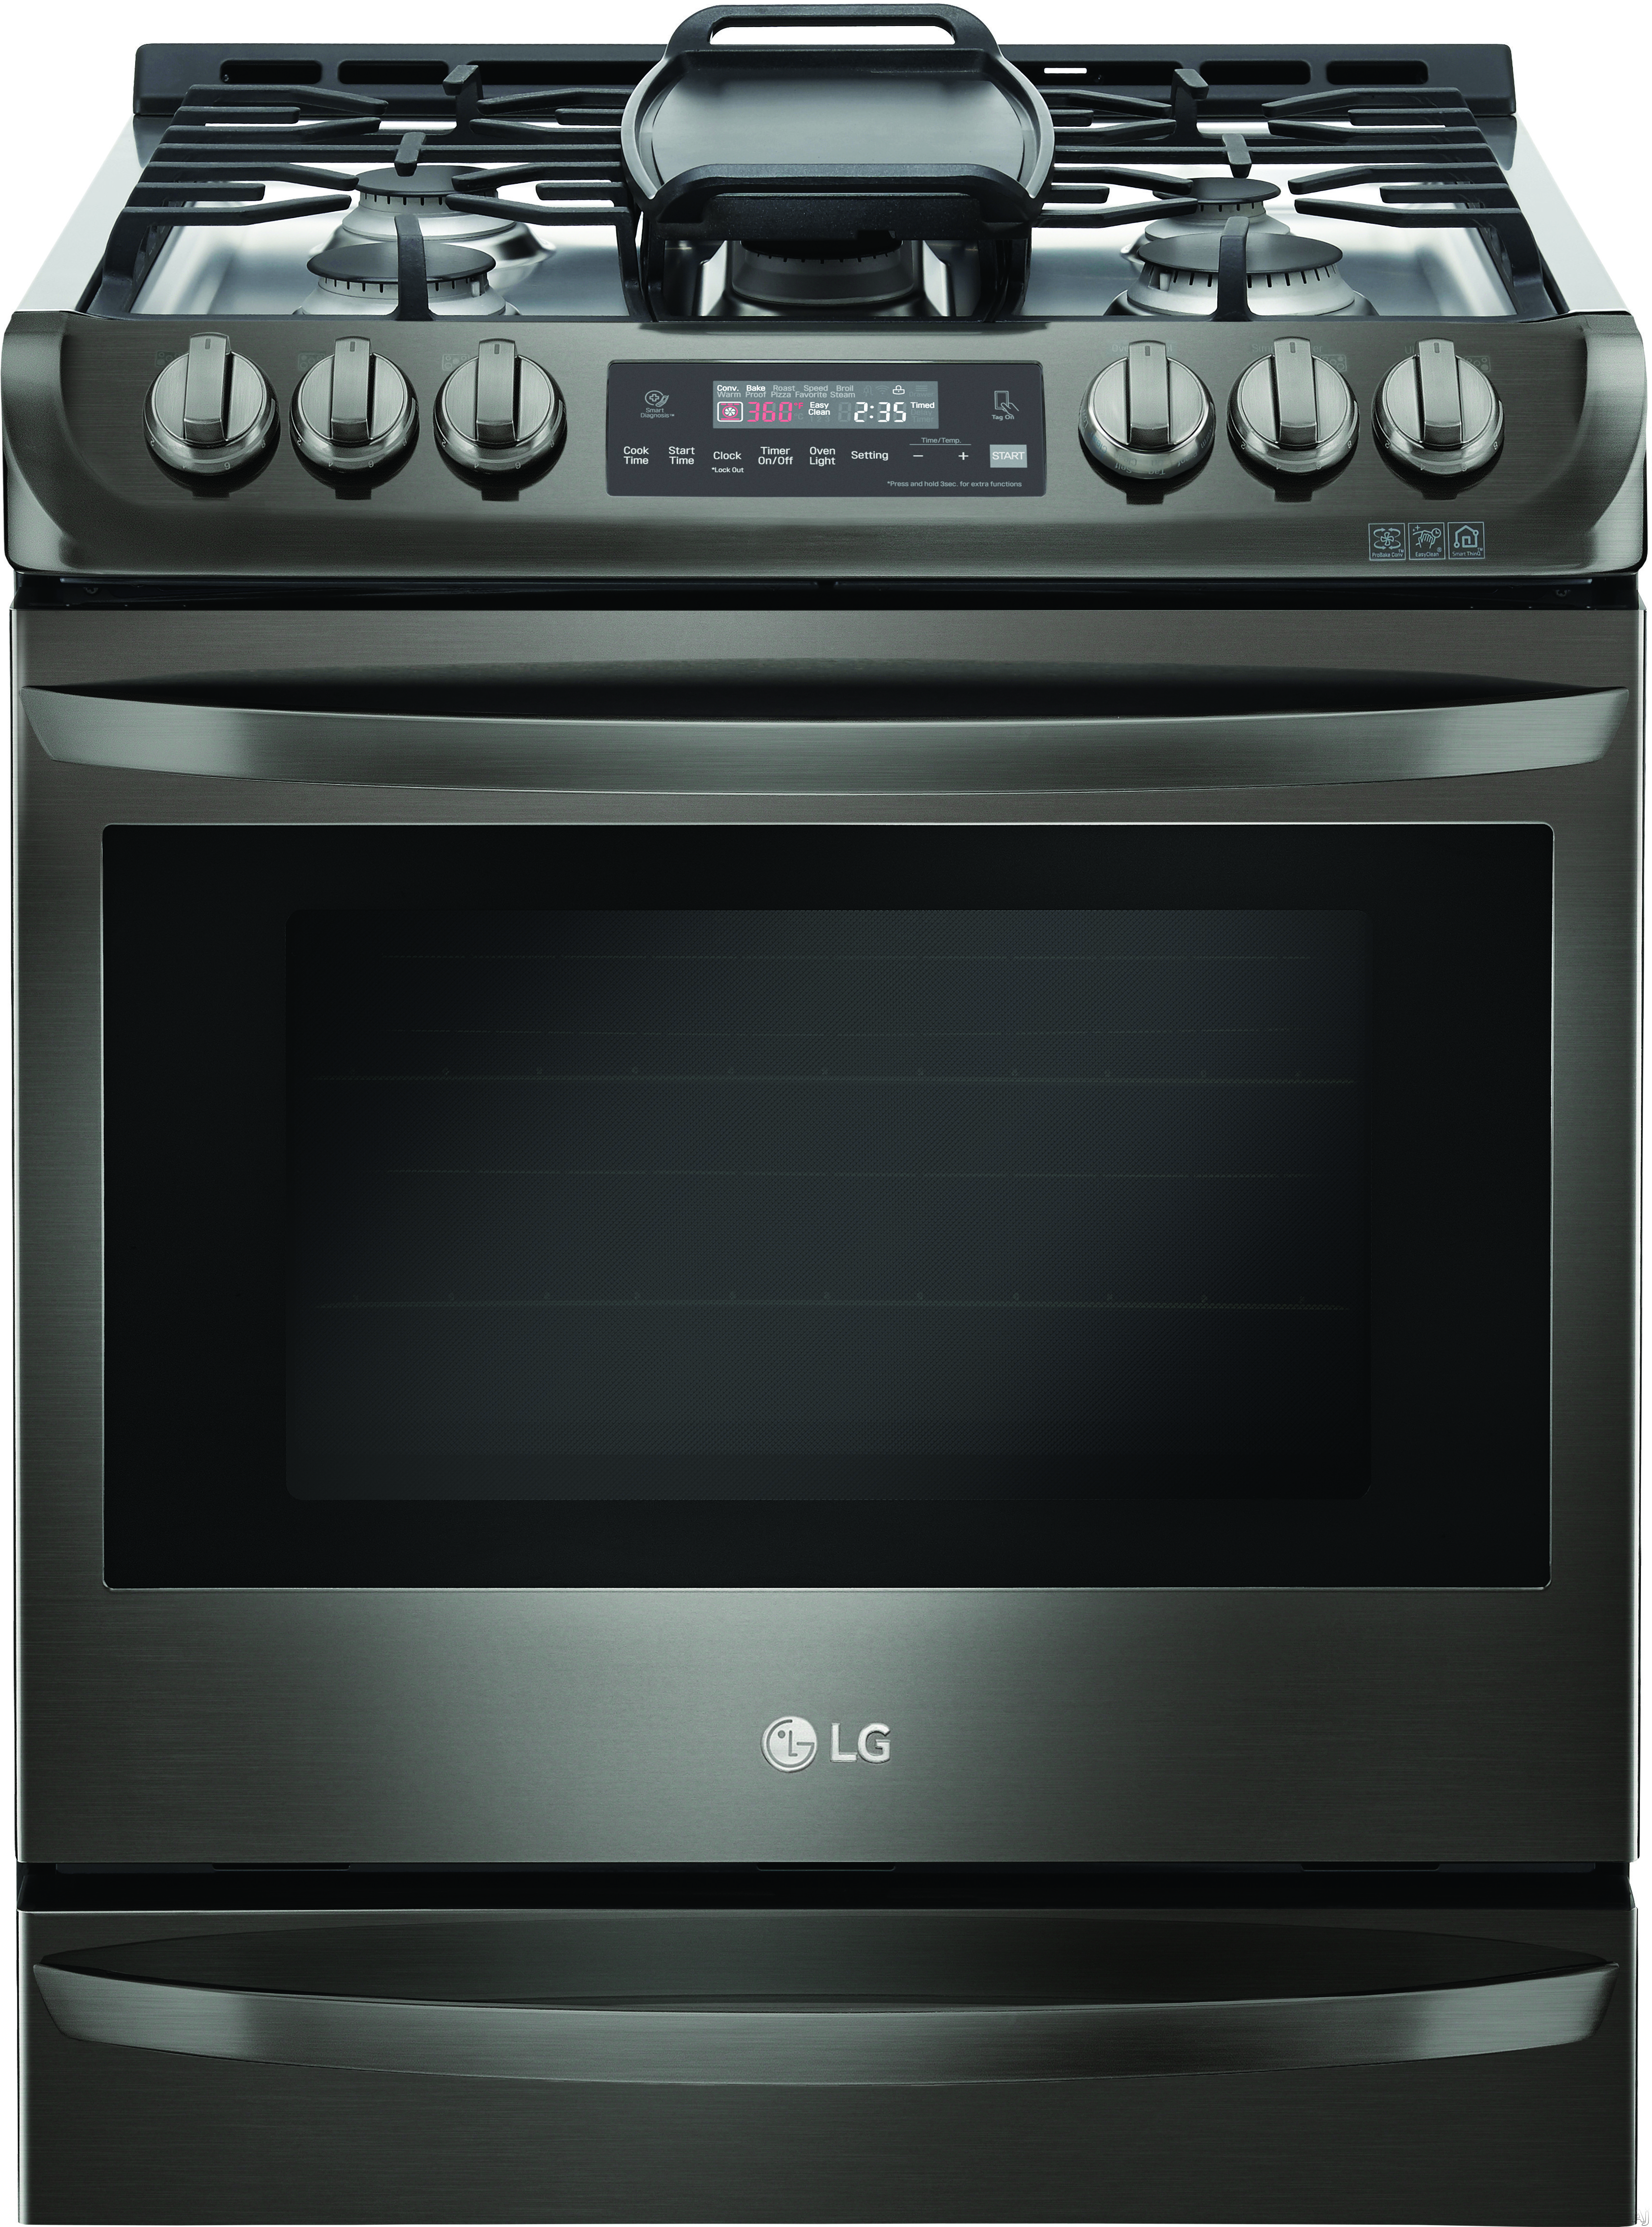 LG LSG4513 30 Inch Slide-in Gas Range with Convection®, LG UltraHeat Burner™, EasyClean®, 6.3 cu. ft. Capacity, 5 Sealed Burners, 11 Cooking Modes, Griddle and Storage Drawer